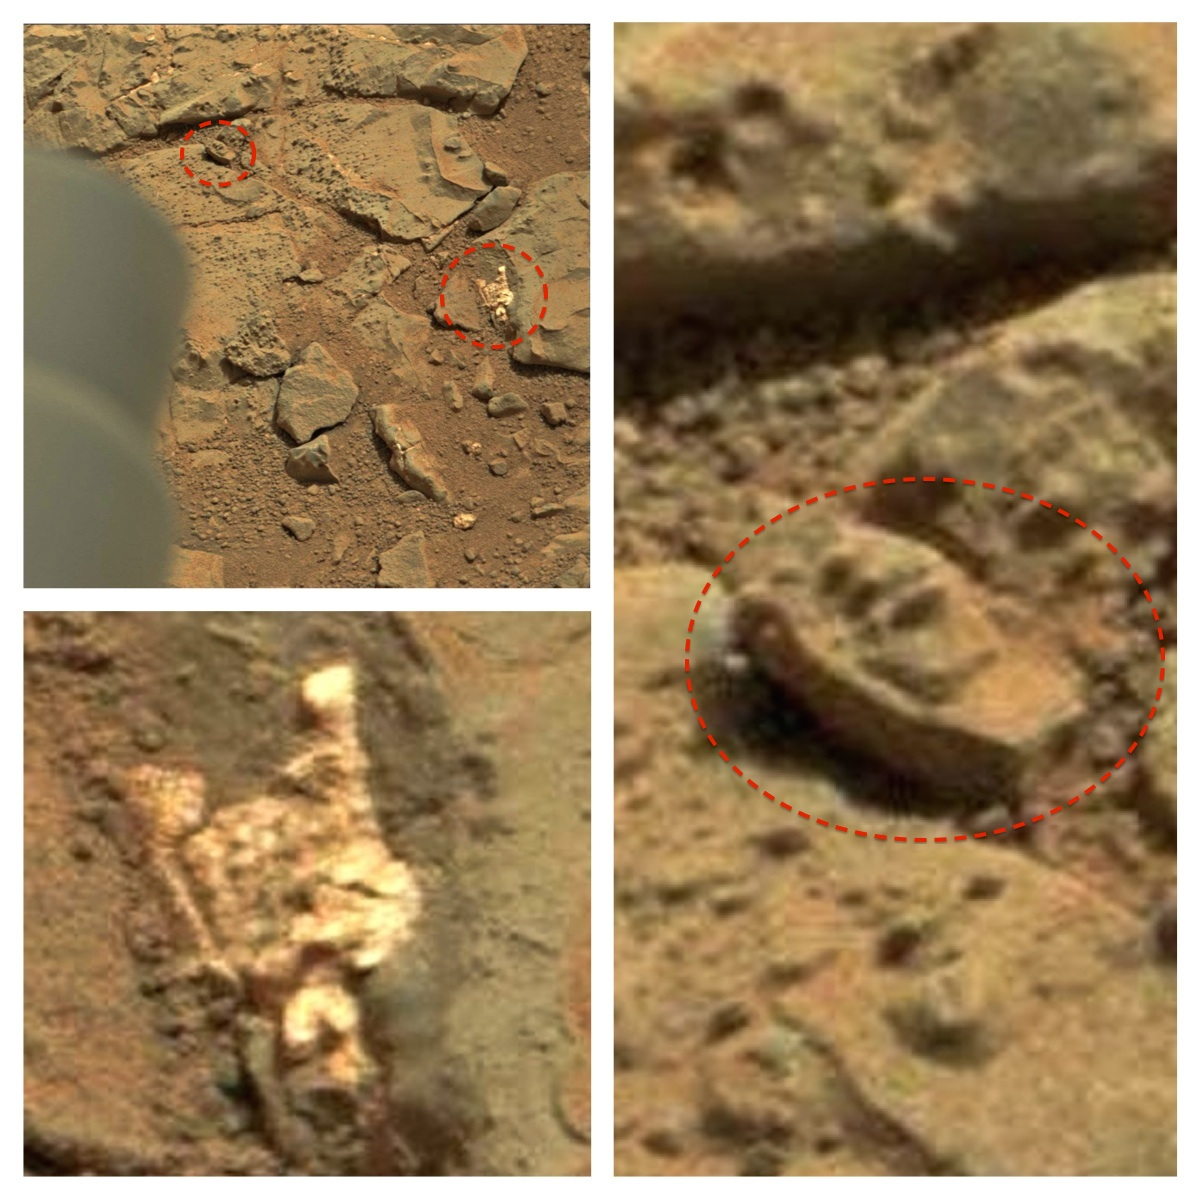 UFO SIGHTINGS DAILY: Fossilized Remains Found On Mars By ...